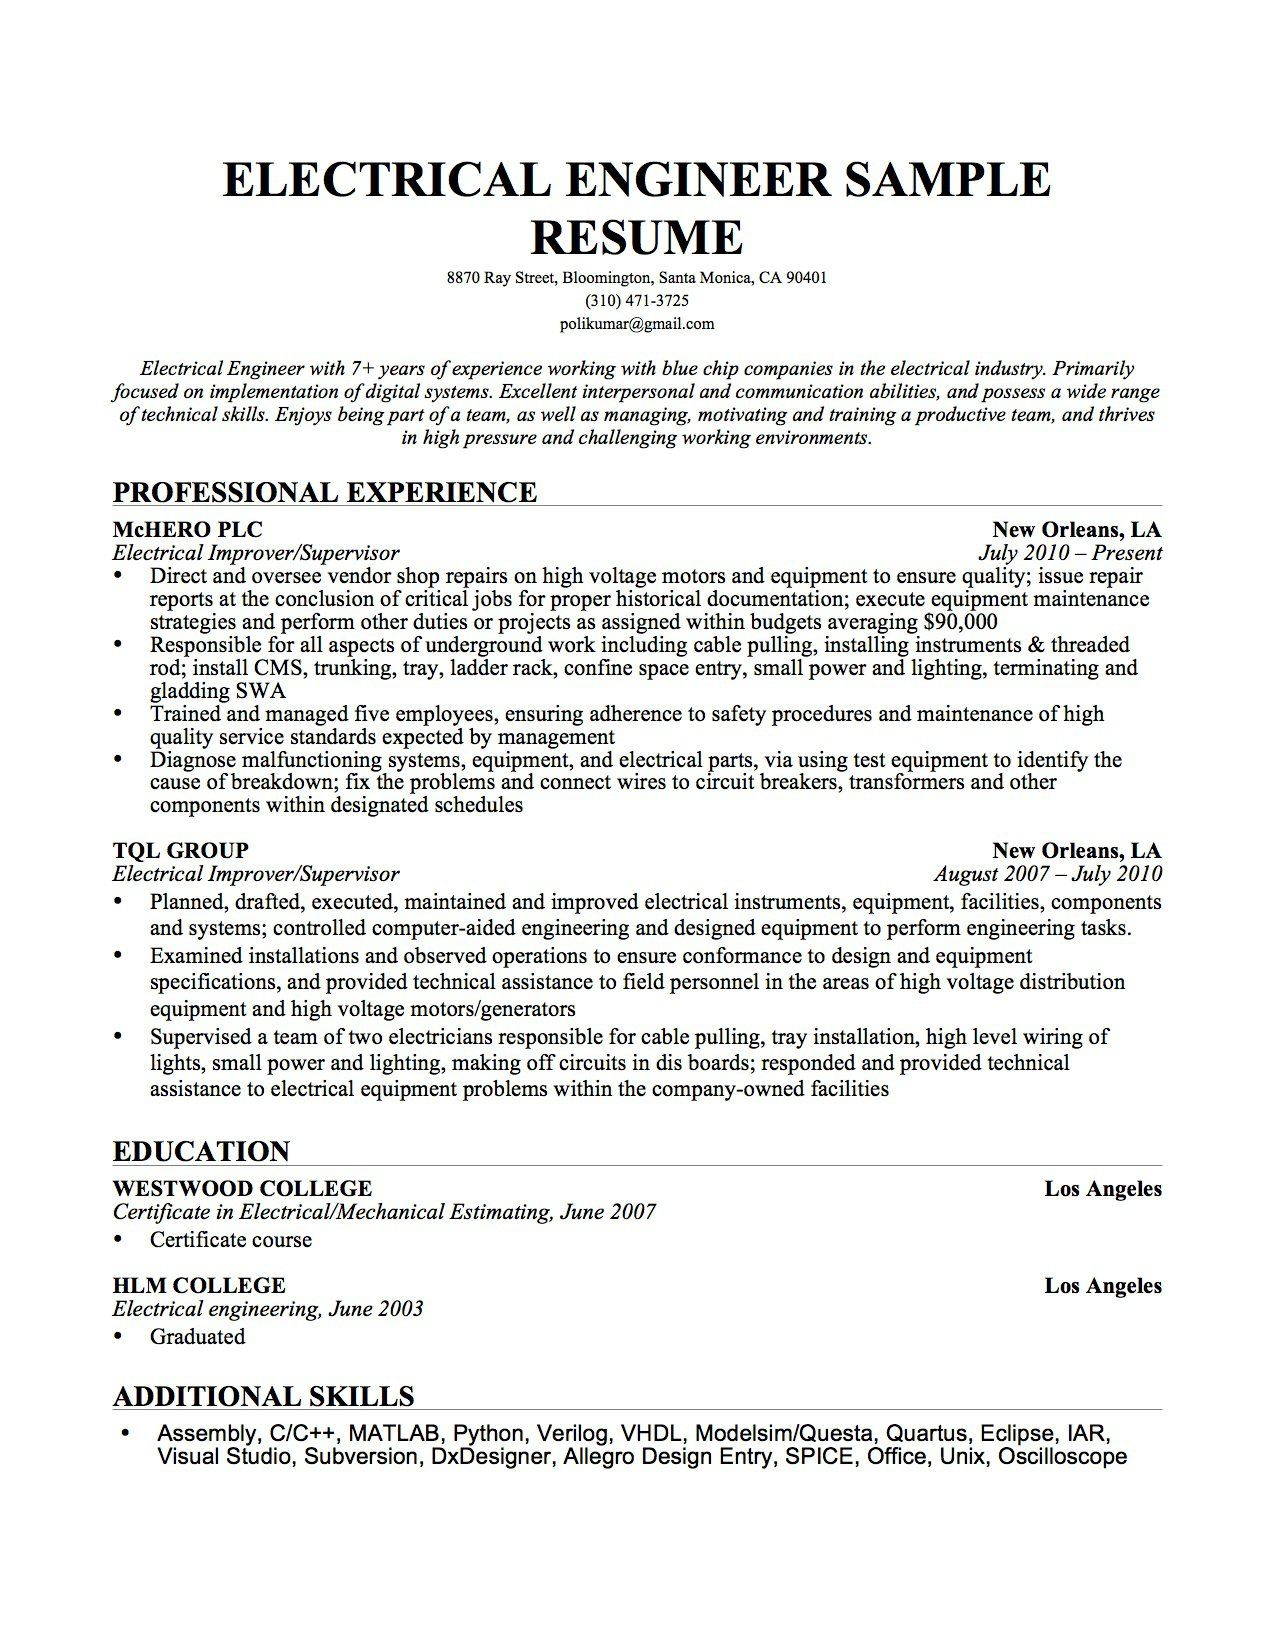 Engineering Resume Cover Letter SamplesFirst Restore